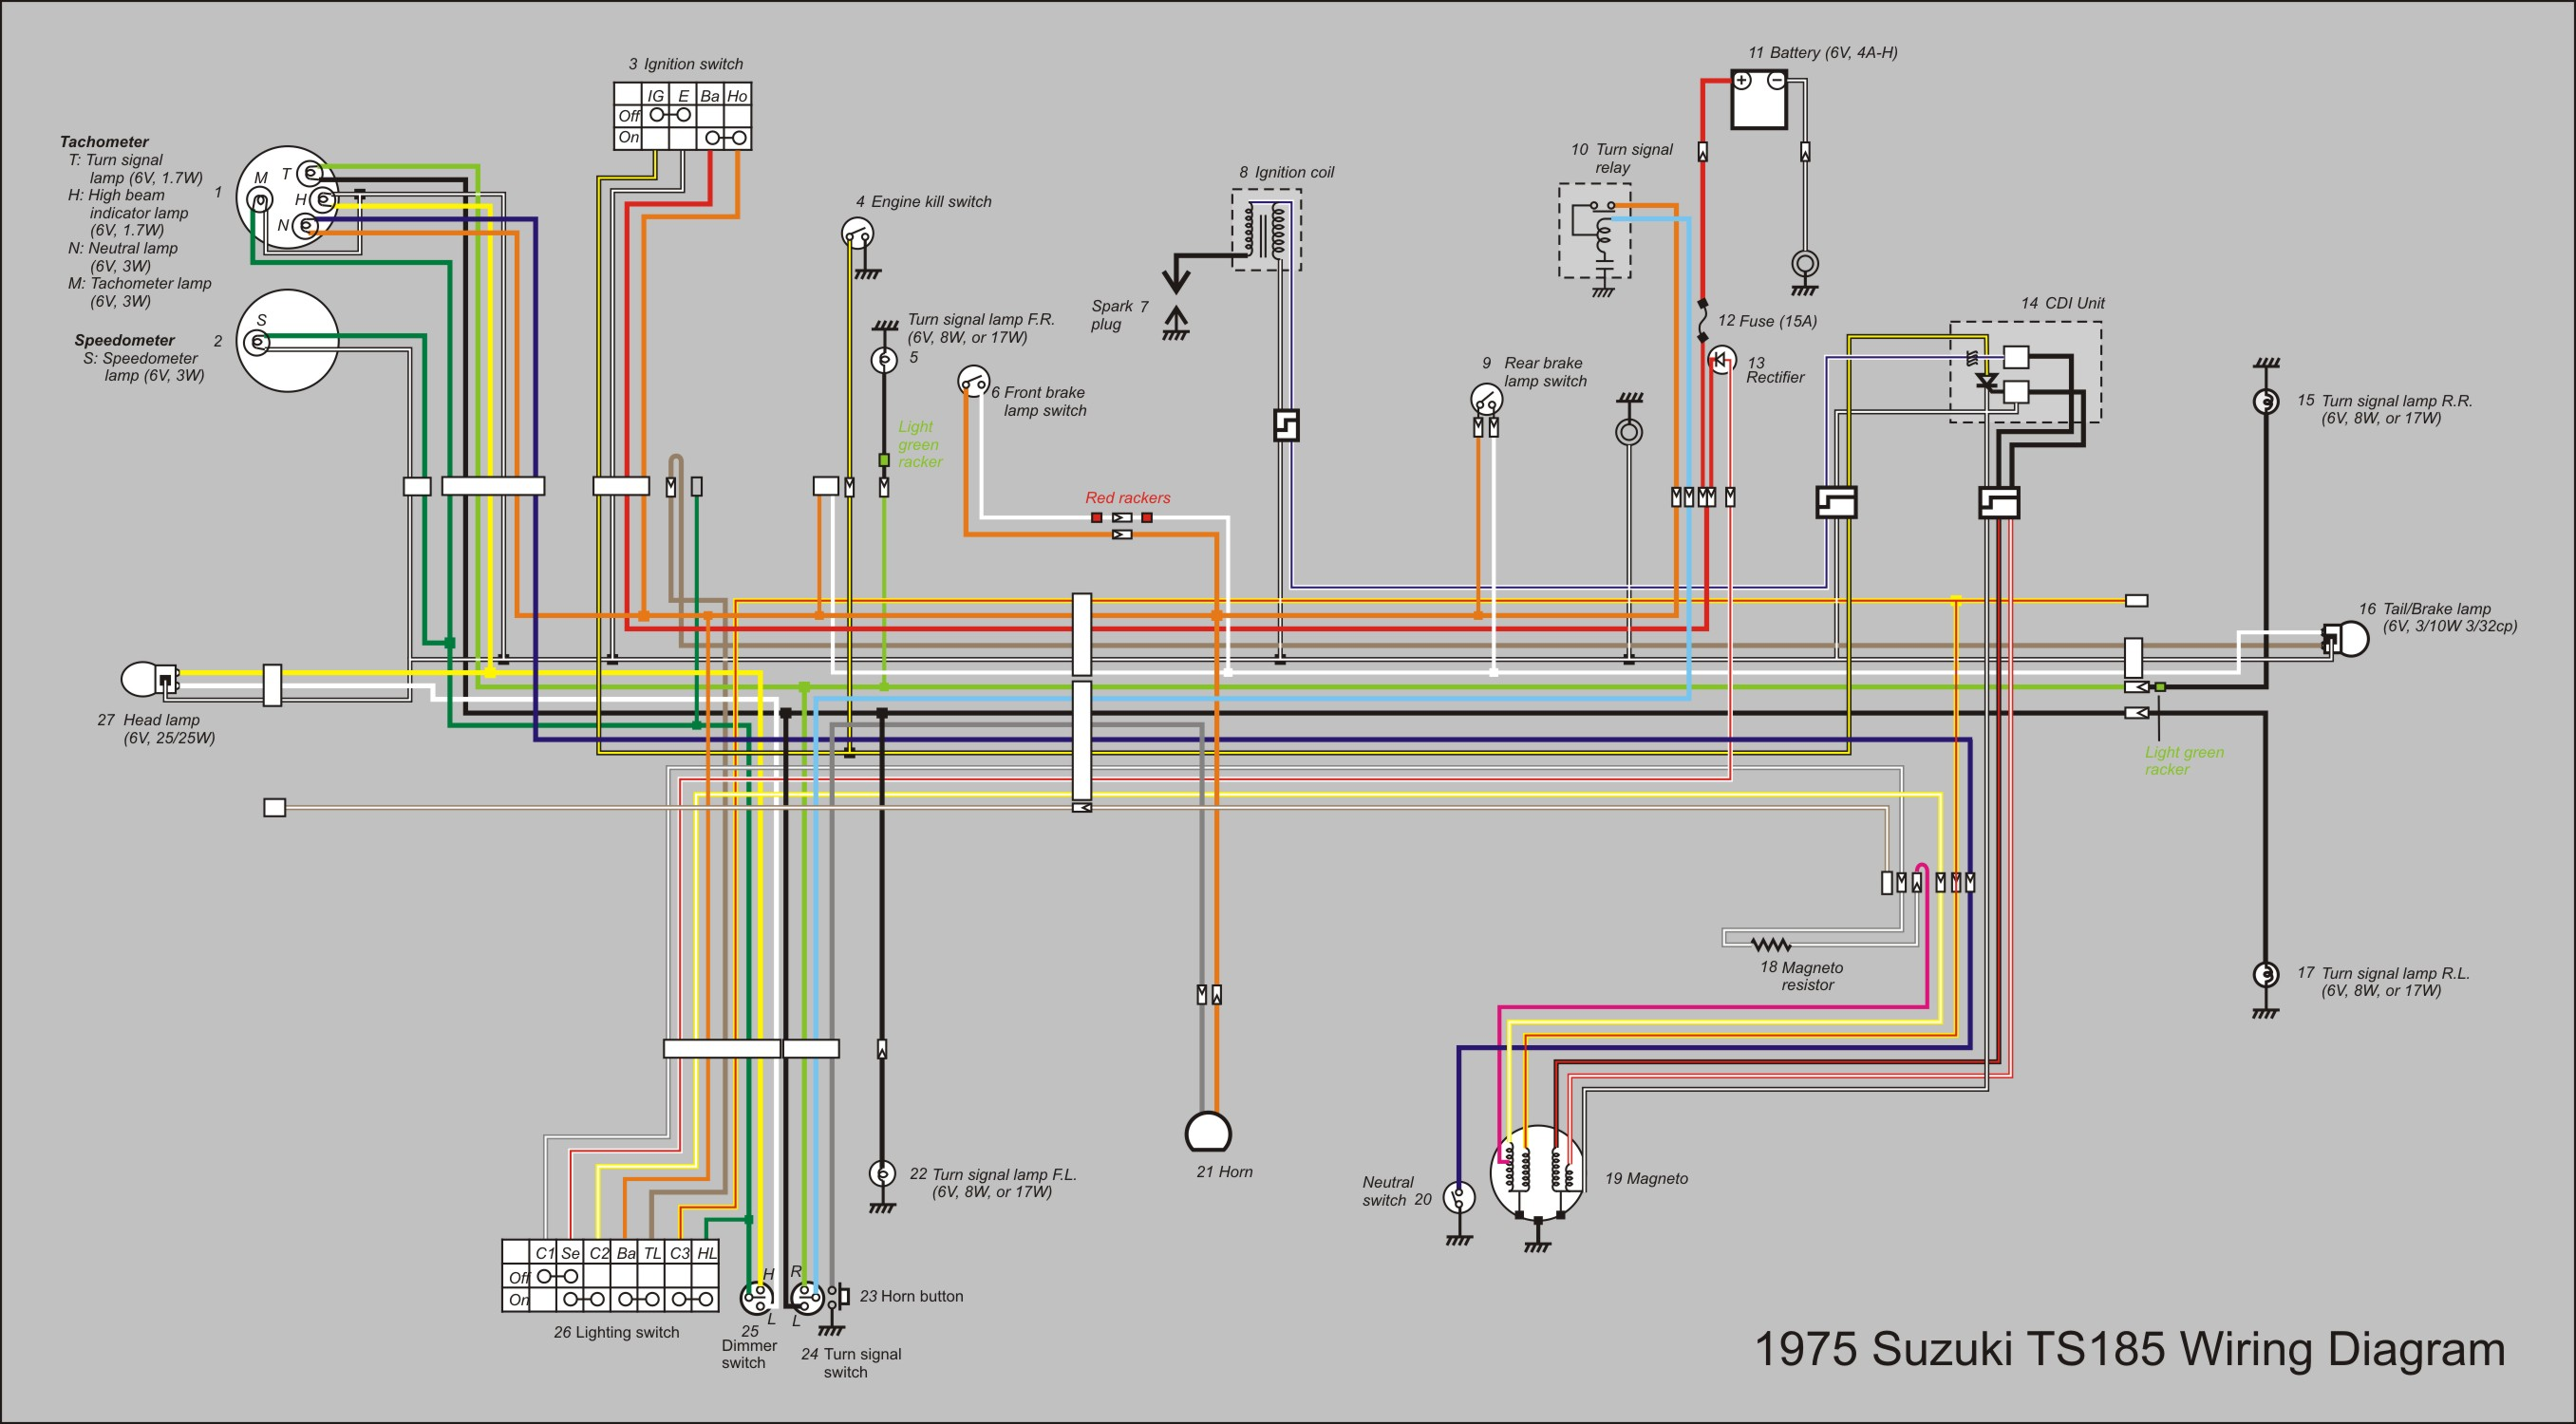 Suzuki Ts 185 Wiring Diagram Electrical Diagrams Schematics 1981 Ironhead Wiring  Diagram 1981 Suzuki Wiring Diagram